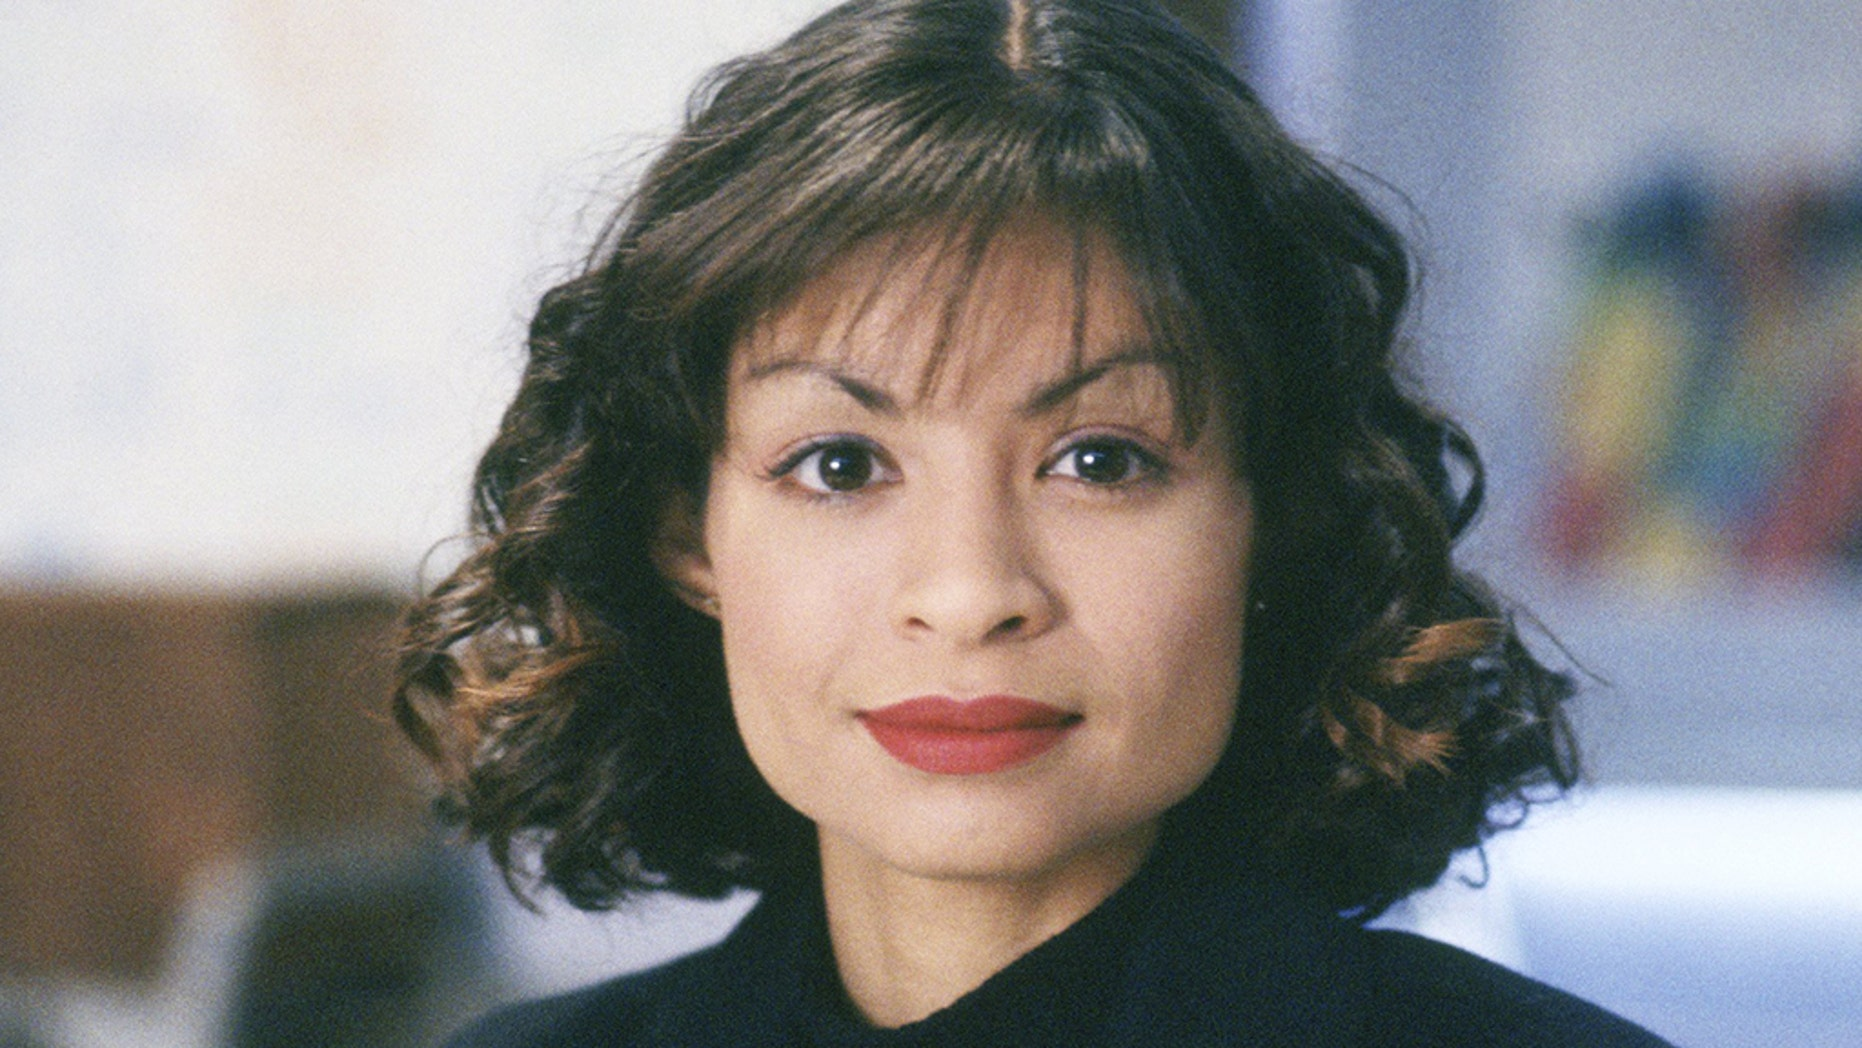 Vanessa Marquez was reportedly killed in an officer-involved shooting.